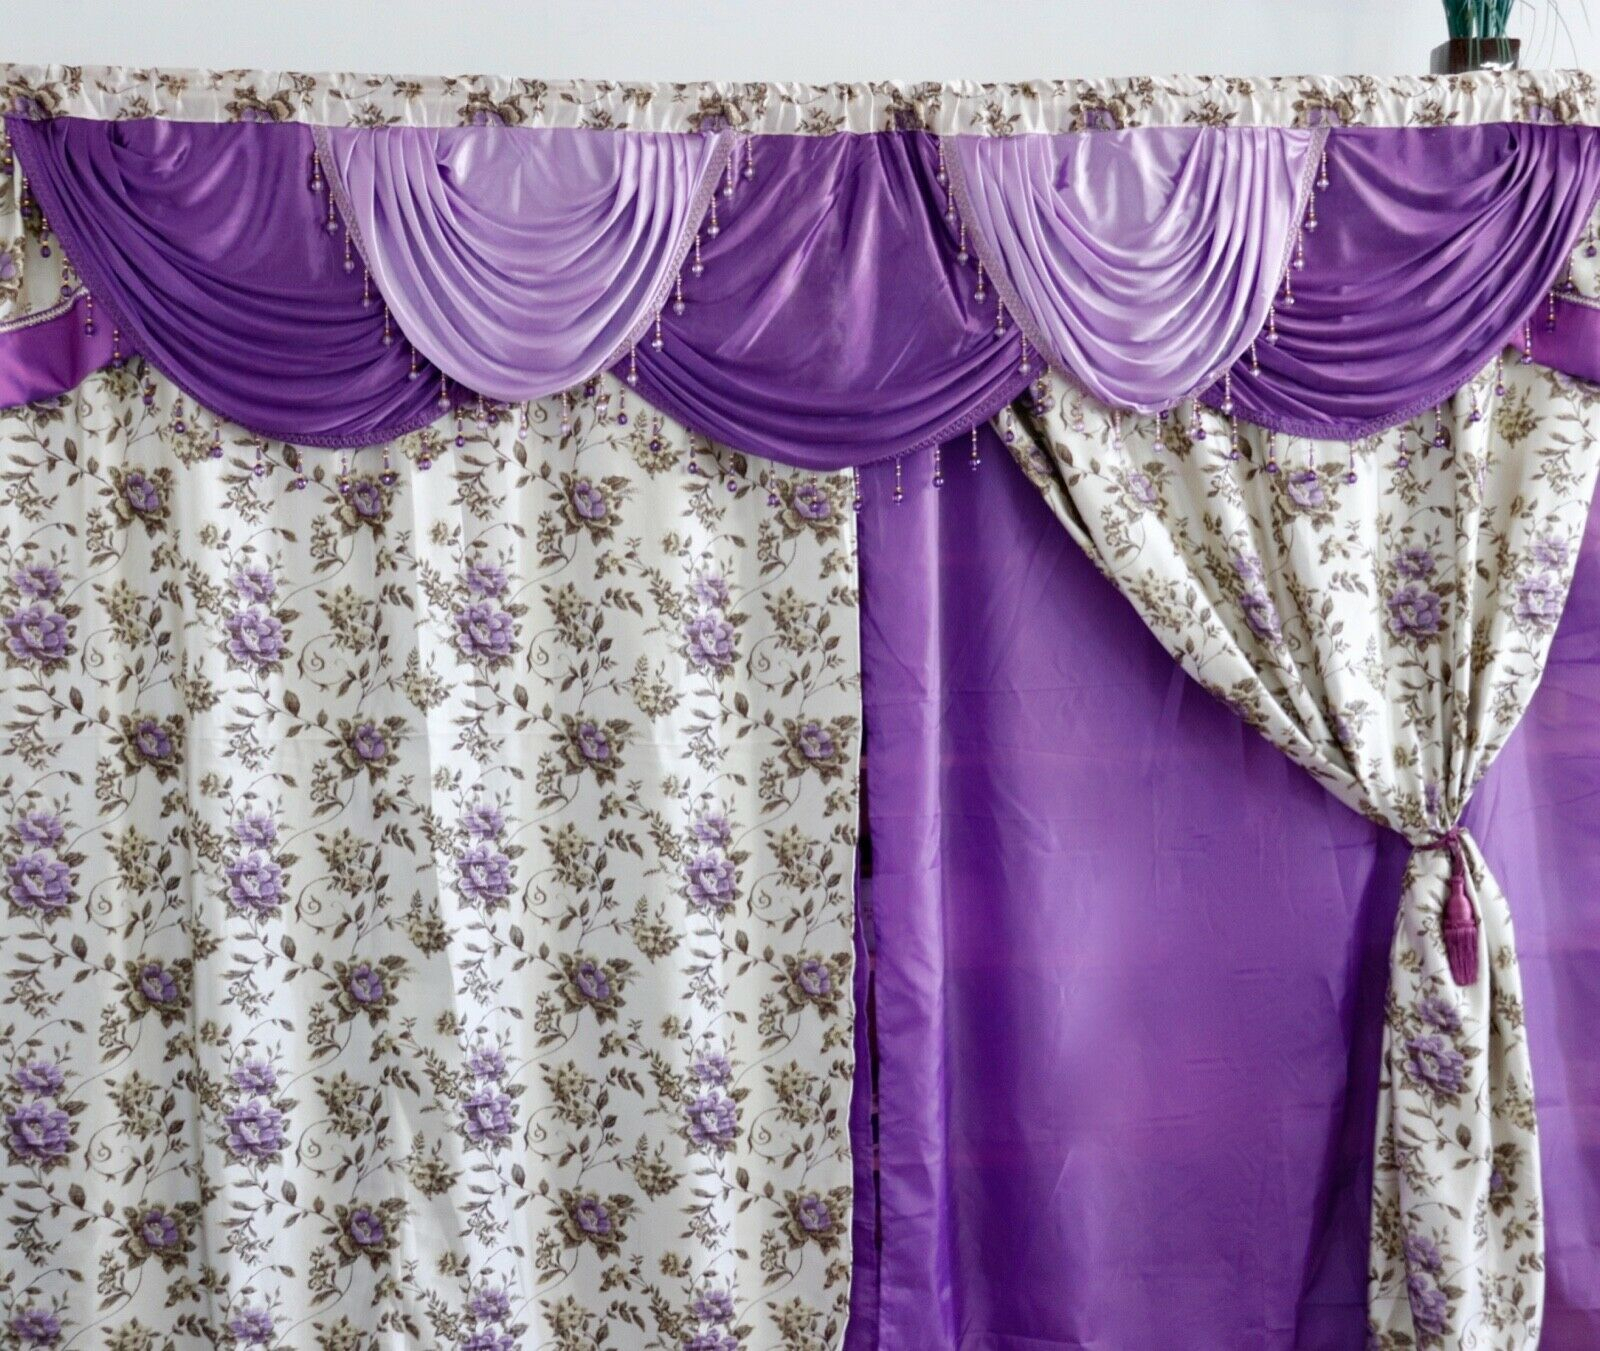 Luxury Größe Curtain Panel Window Floral Jacquard Super With Regard To Luxury Light Filtering Straight Curtain Valances (View 12 of 20)